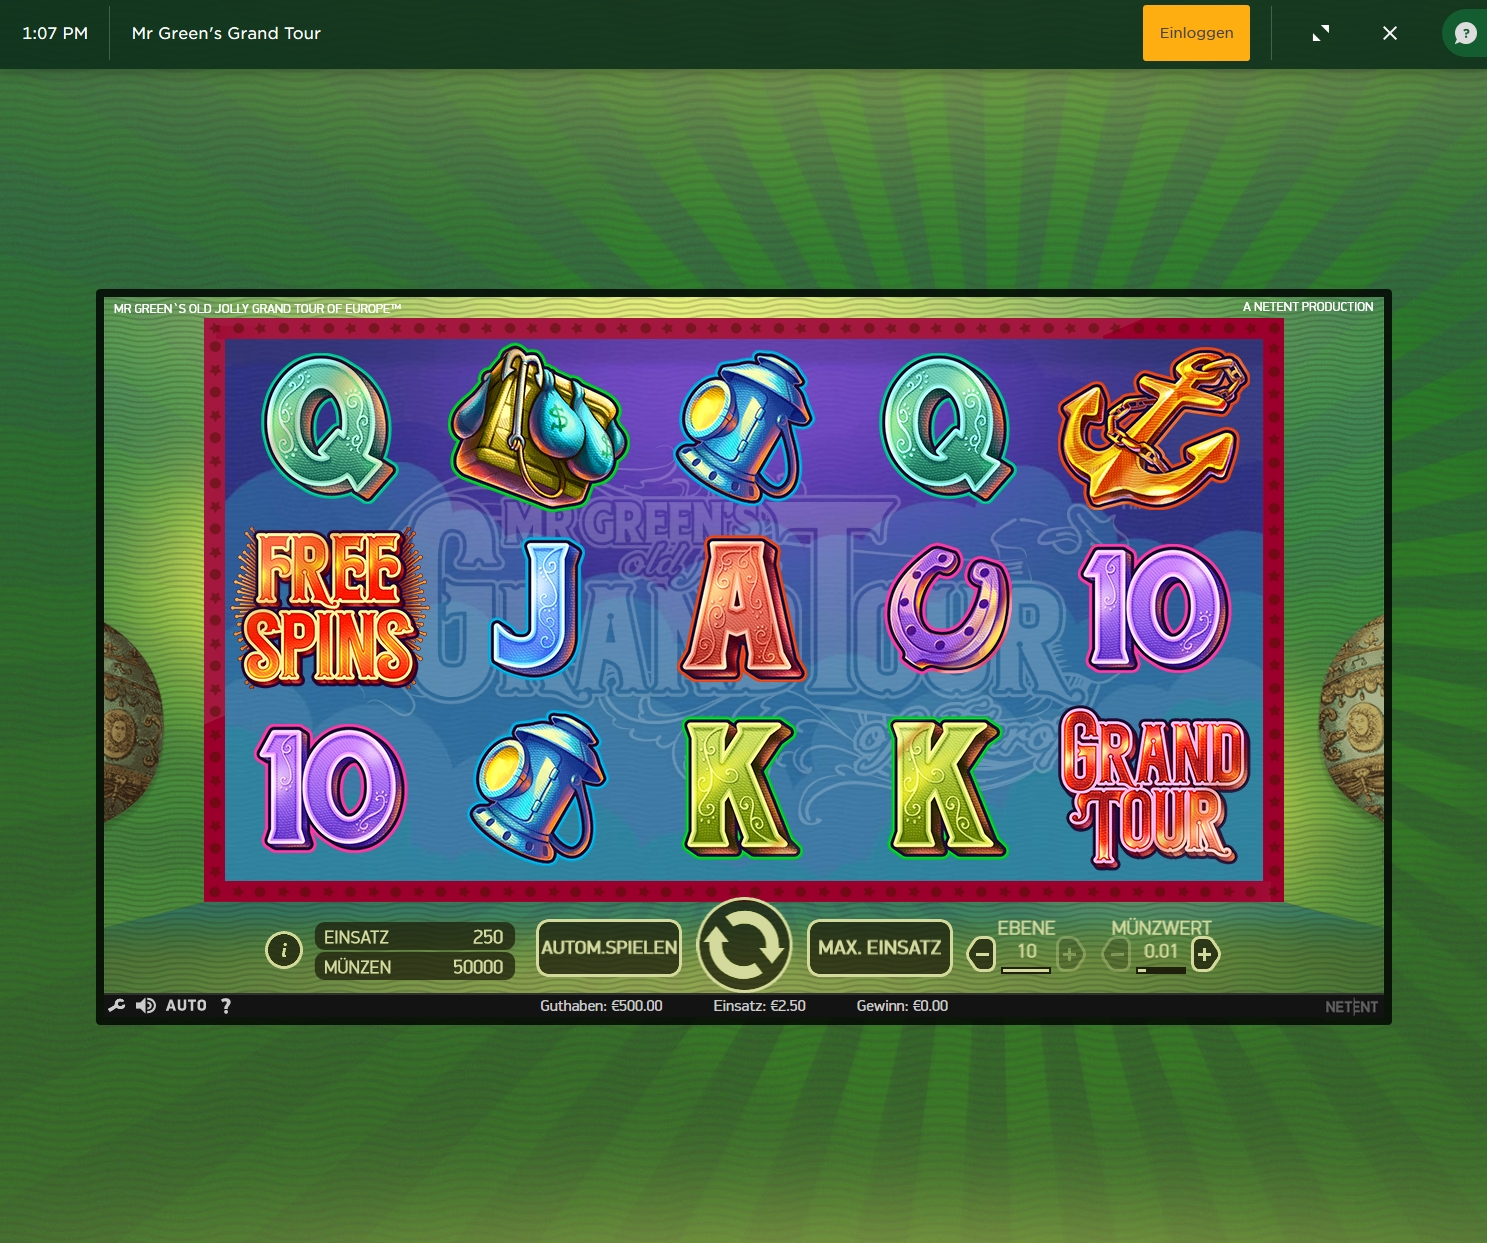 Spiele Mr. GreenS Grand Tour Slots - Video Slots Online